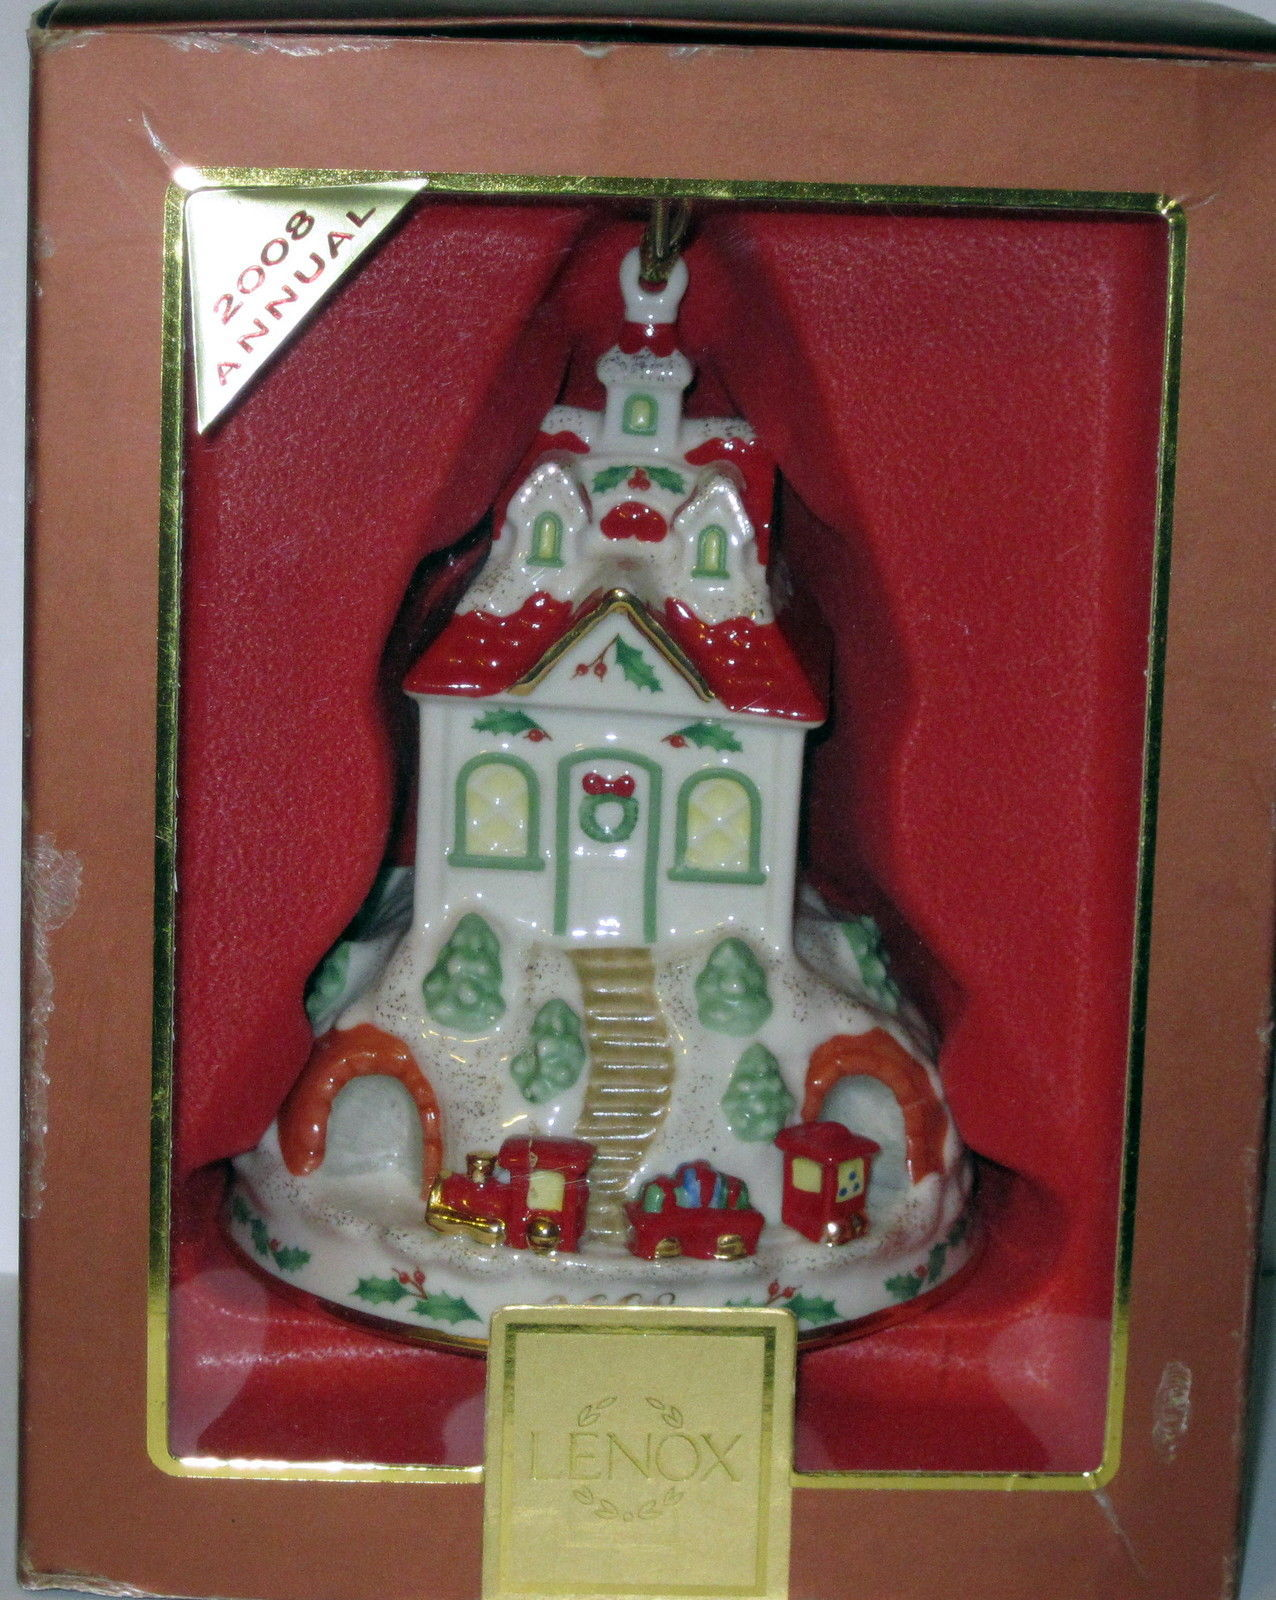 NIB LENOX 2008 Annual Holiday Ride Christmas Ornament Train Station Depot Train